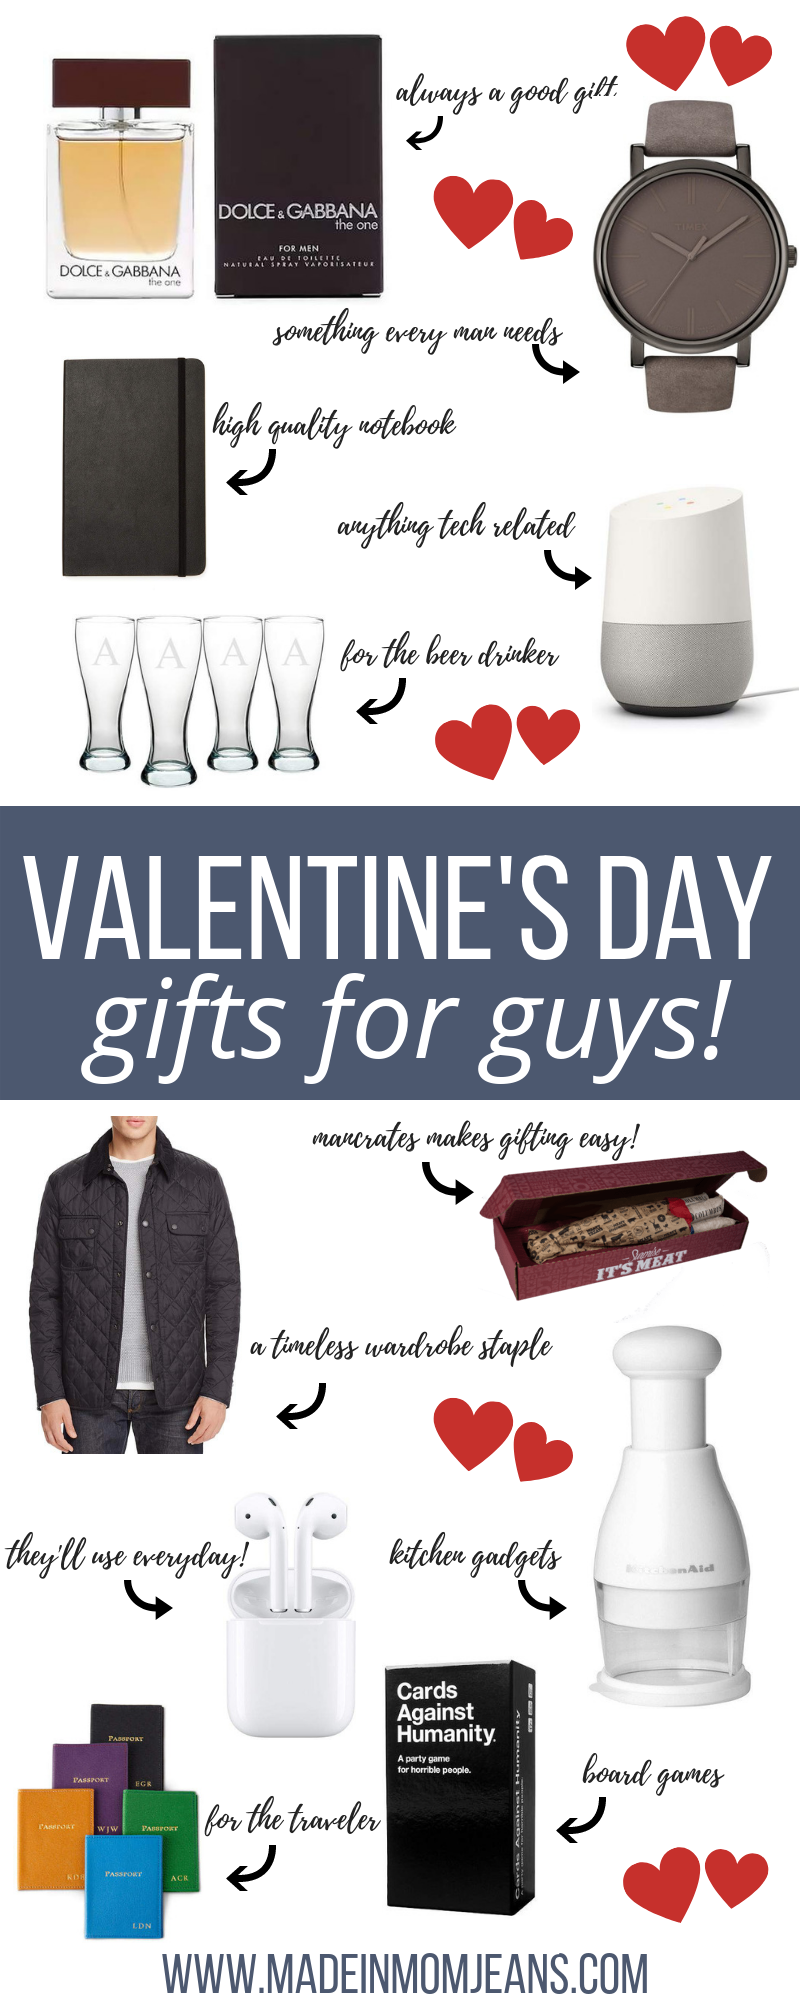 valentine's day gifts for guys.png